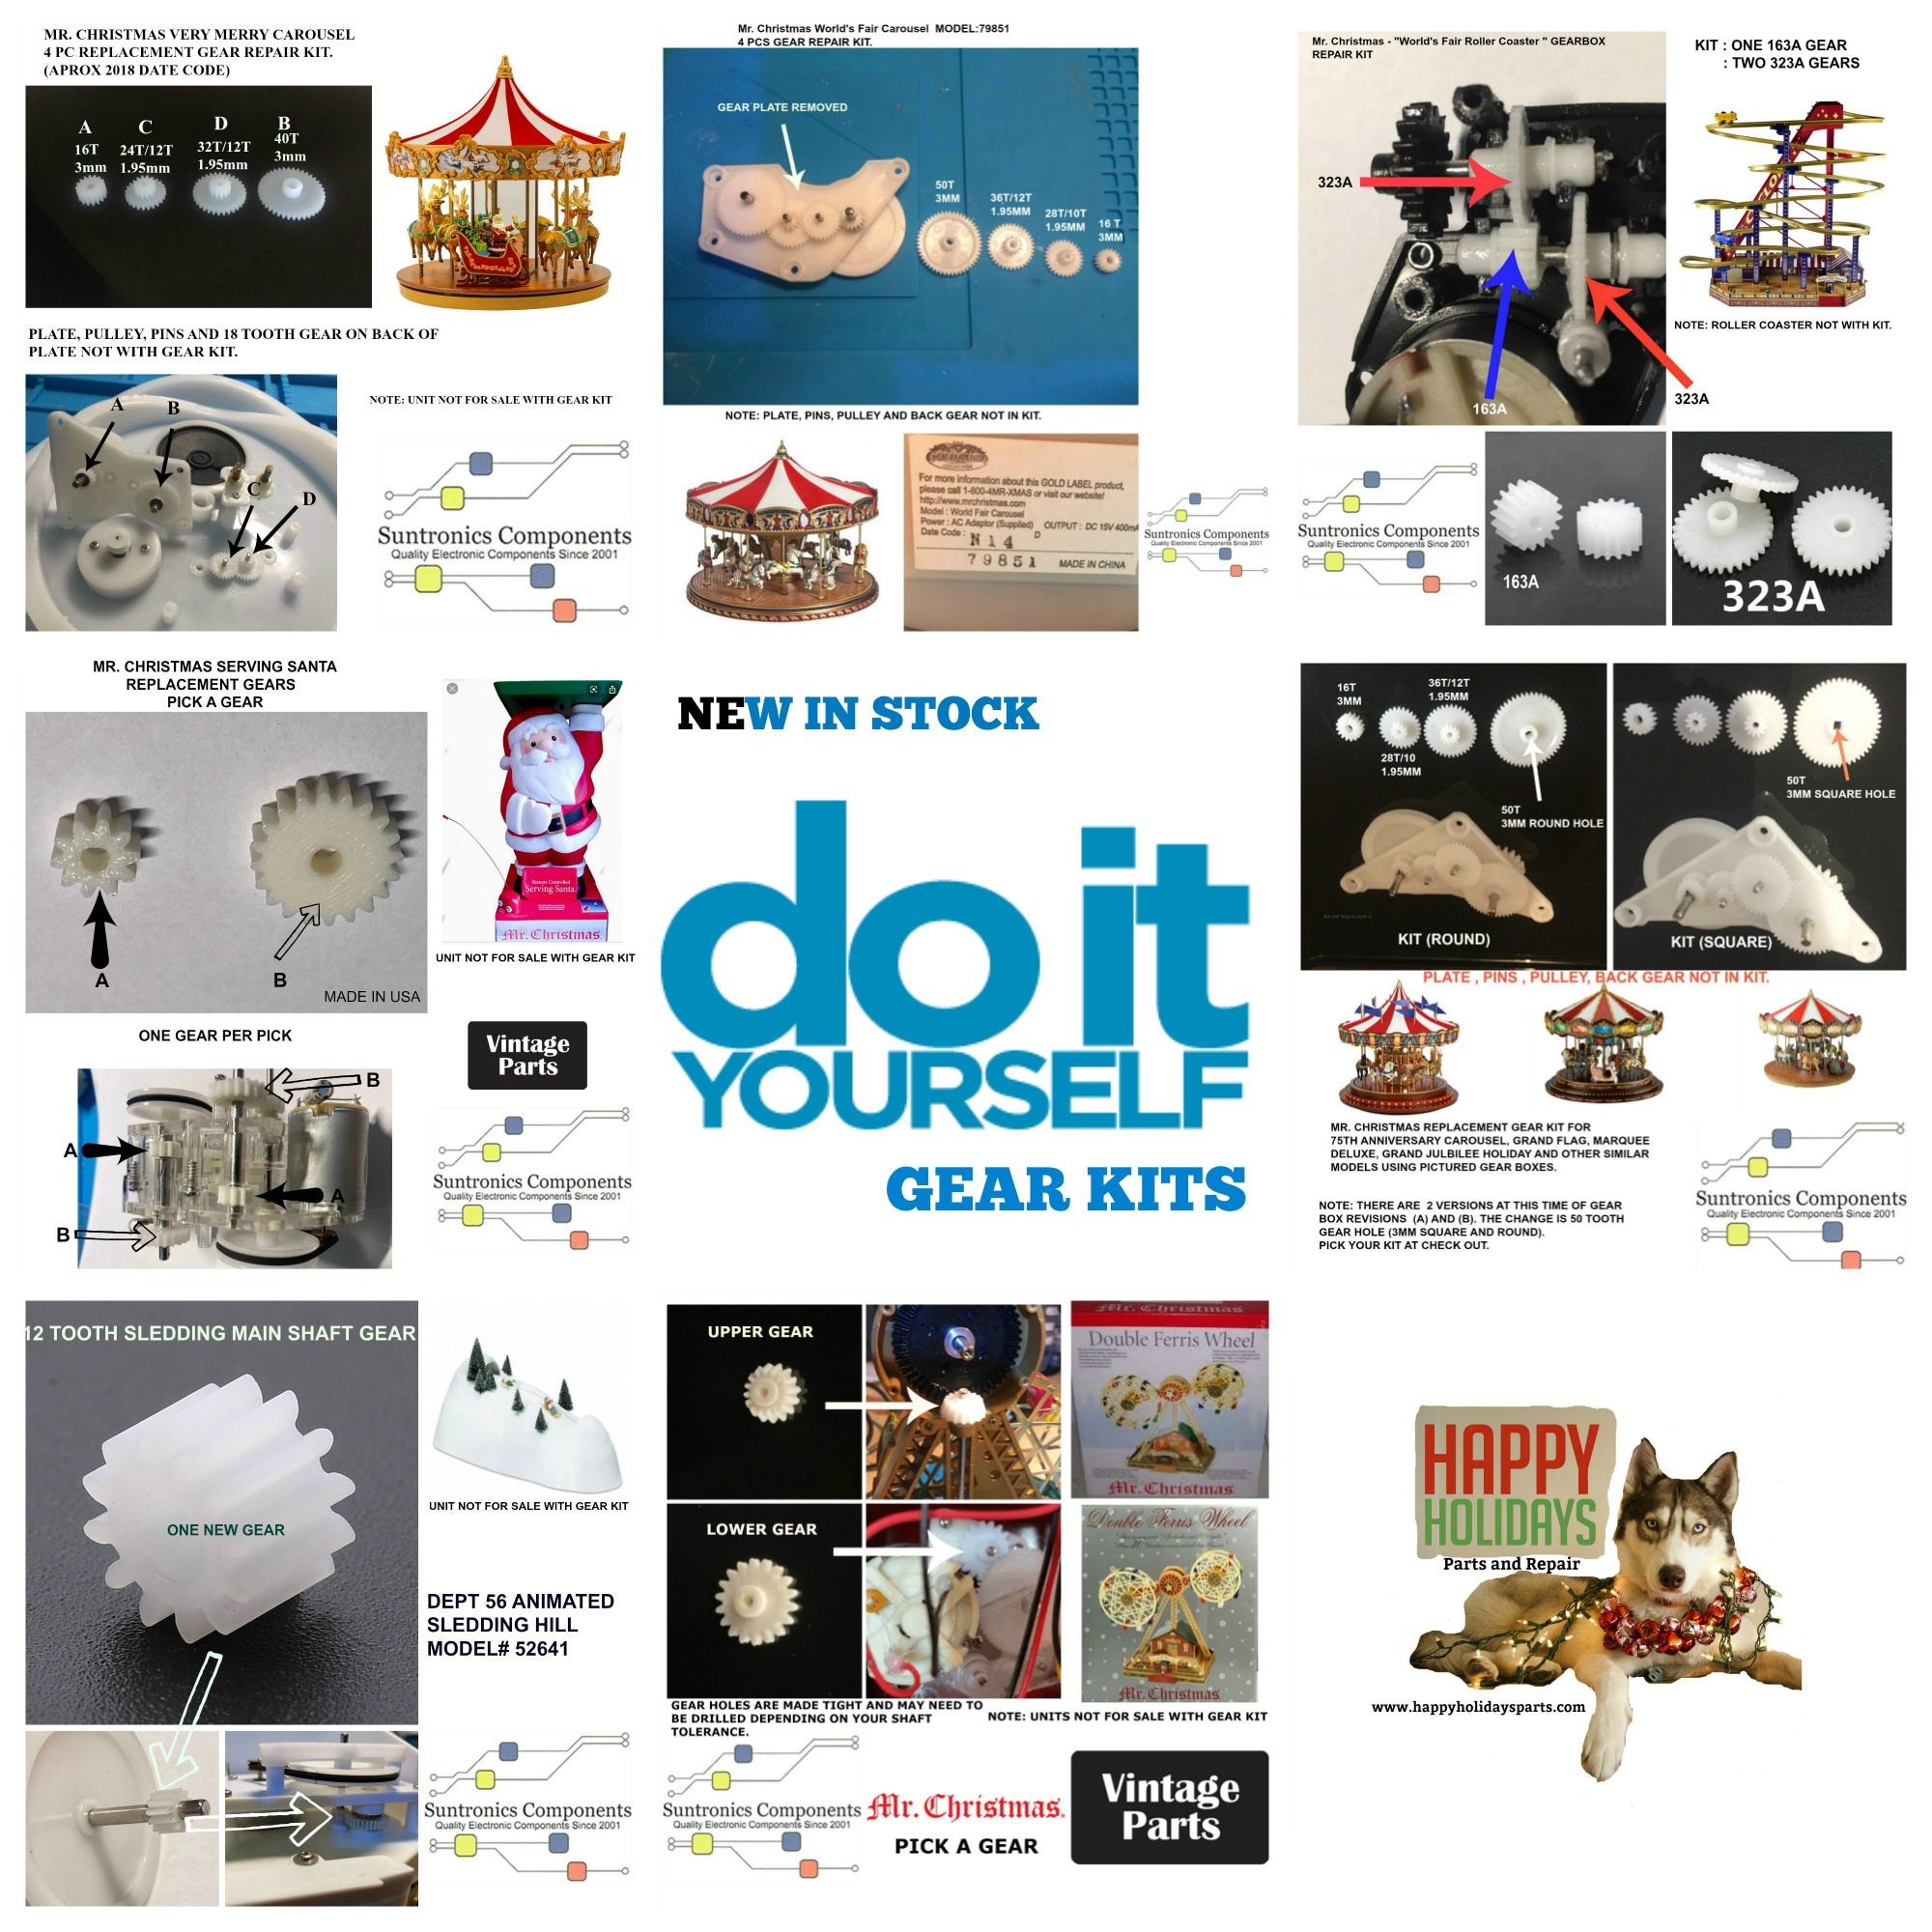 PicMonkey Image DO IT GEAR KITS